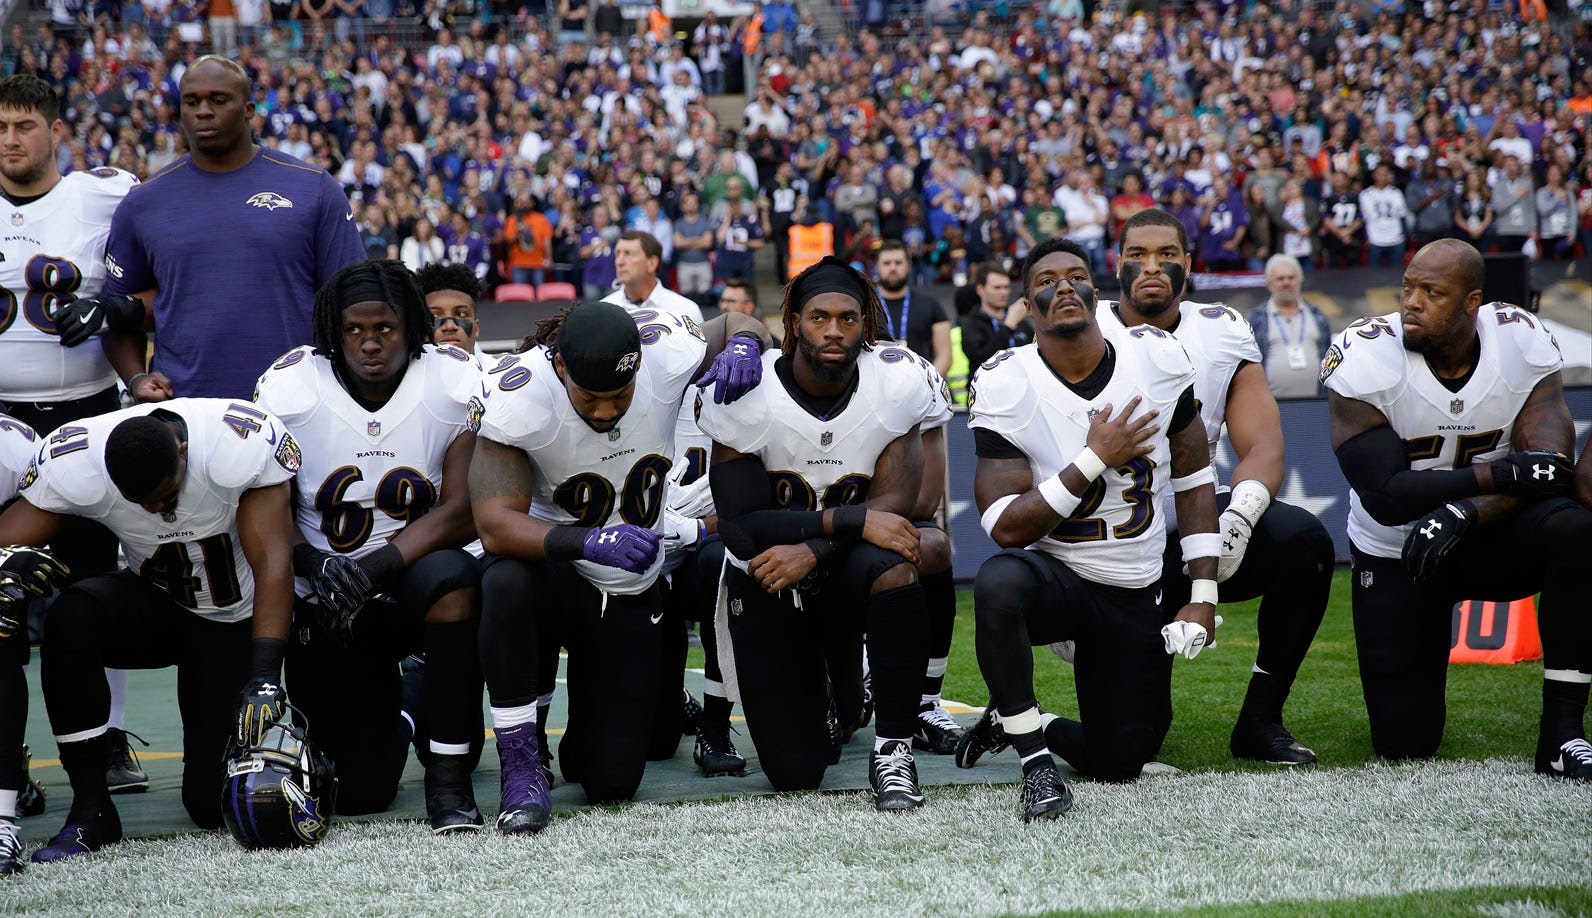 http://static1.businessinsider.com/image/59c7b82819d2f51e008b524c-1592/baltimore-ravens-kneel-for-anthem.jpg